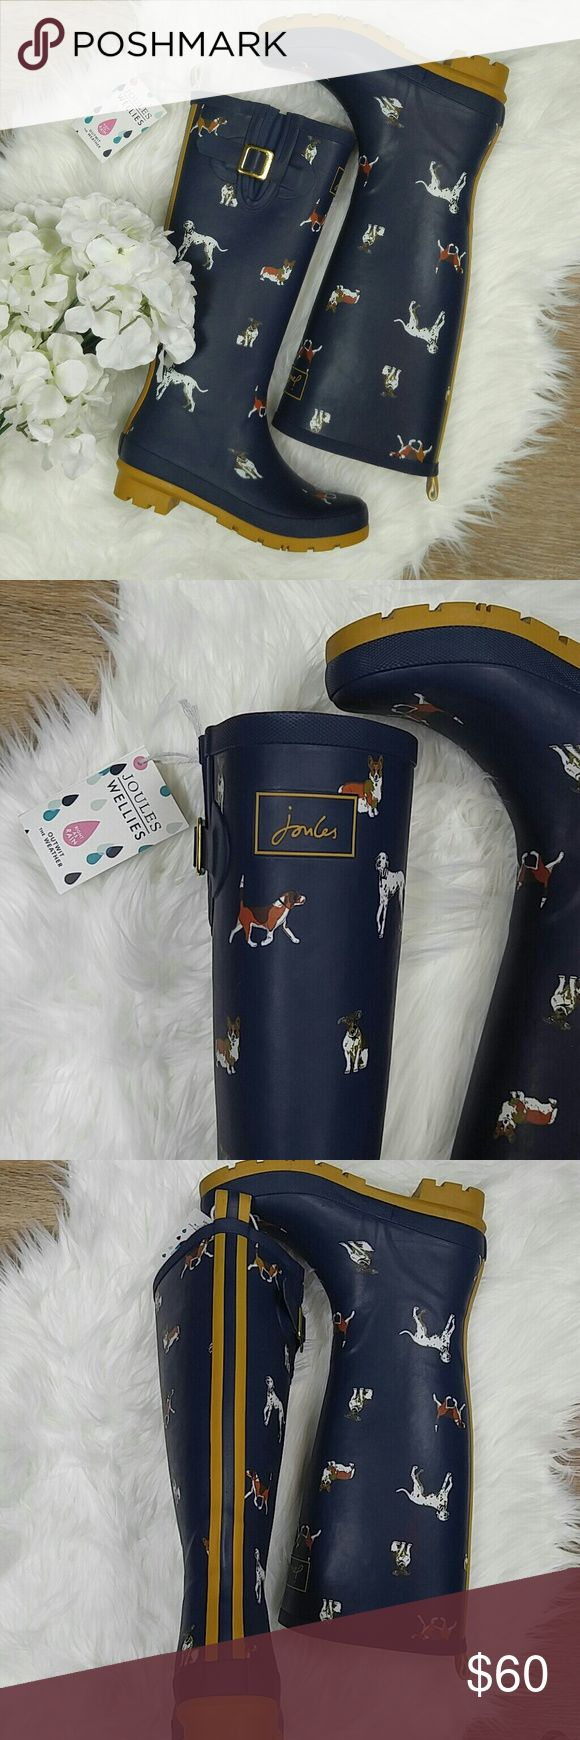 Joules dog print rainboot (SOLD OUT) Size 6 - runs big Joules Shoes Winter & Rain Boots